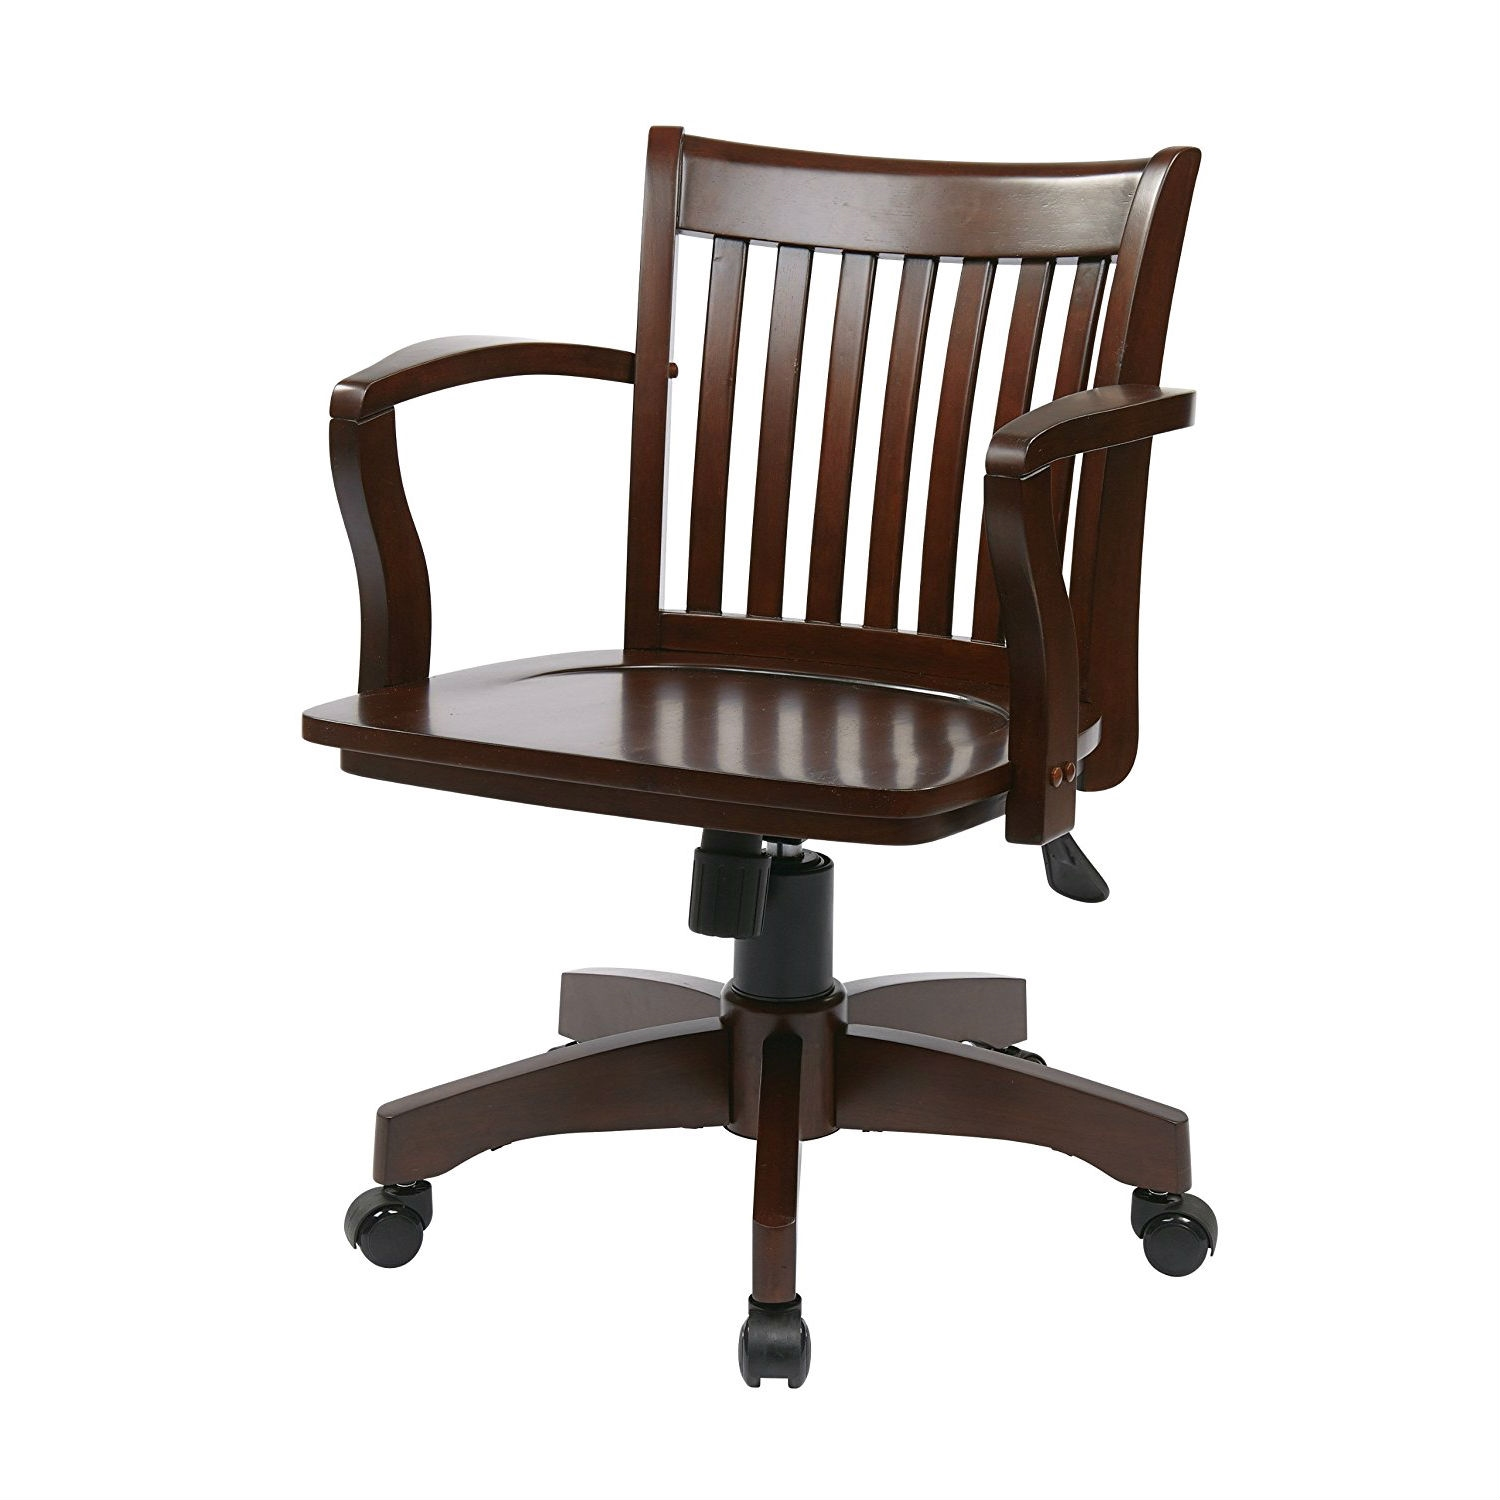 Wooden Bankers Chair Espresso Wood Bankers Chair With Wooden Arms And Seat